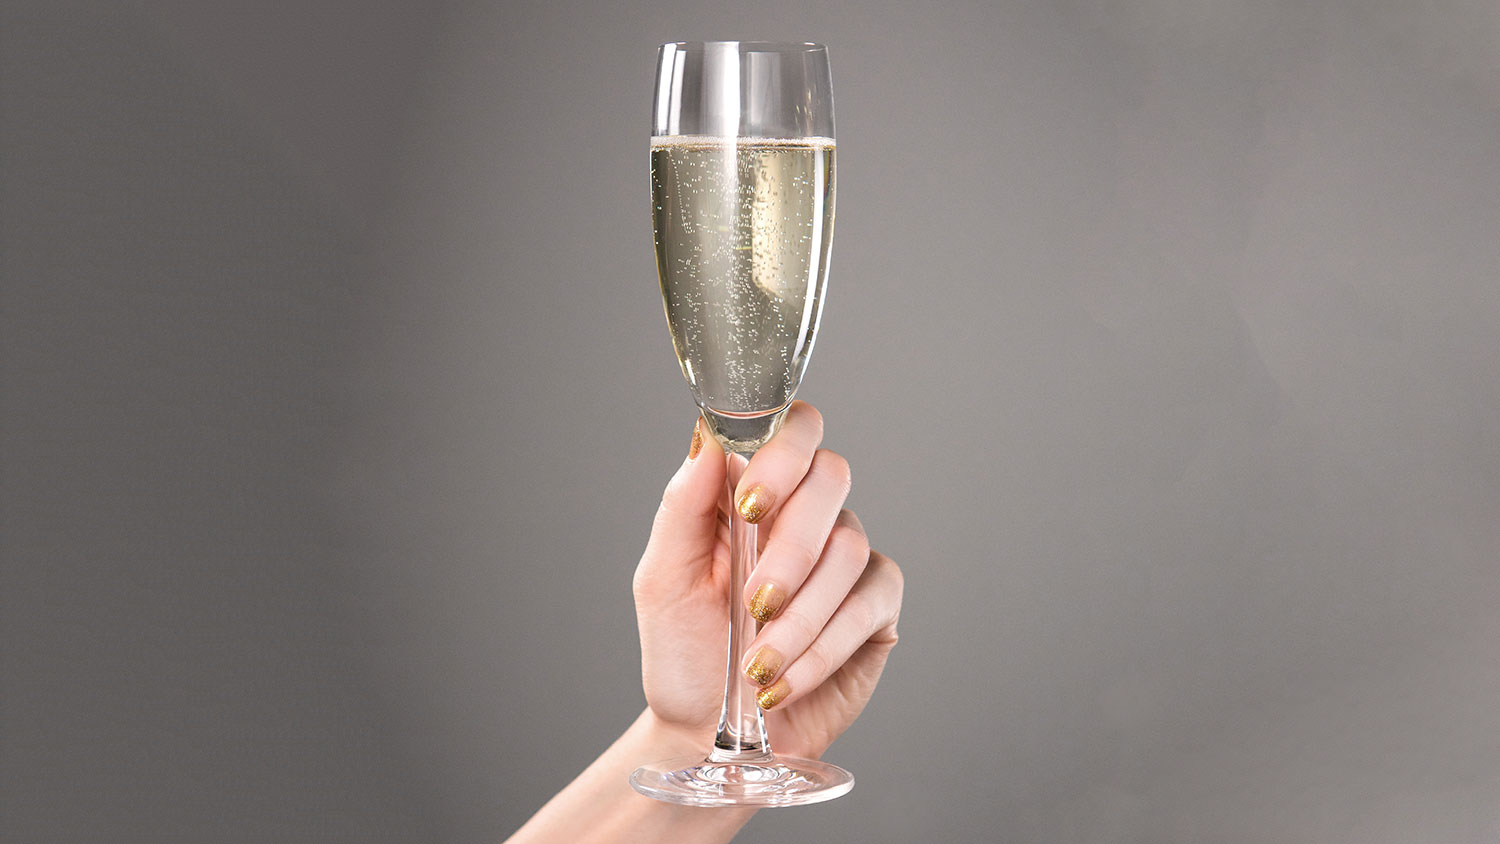 EC: How to Properly Pour Prosecco So the Bottle Doesn't Go to Waste